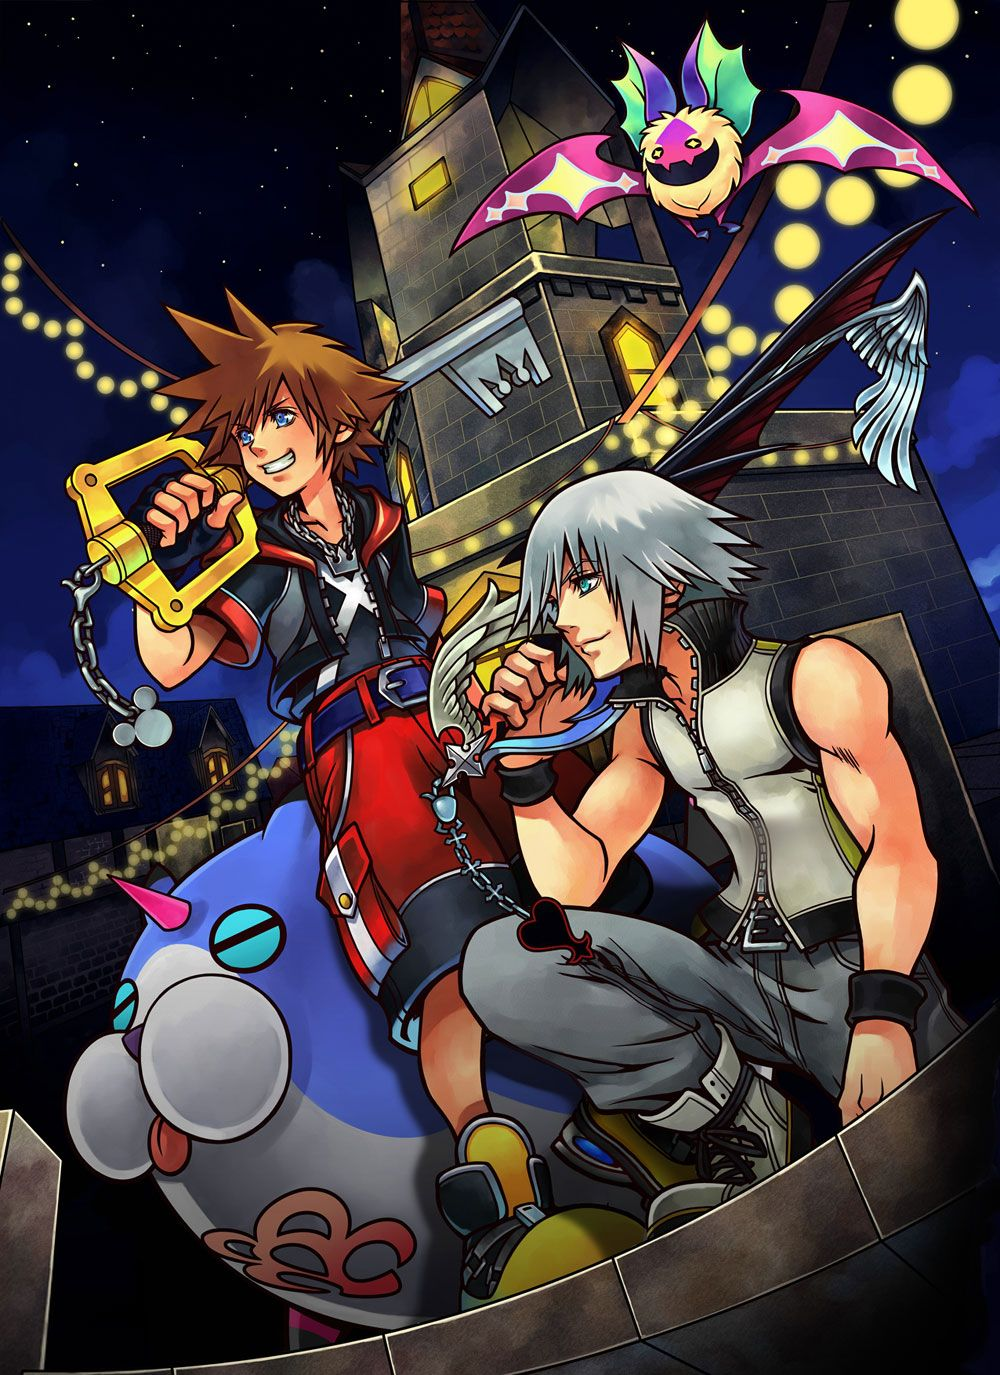 Kingdom Hearts 3d Dream Drop Distance Tgs Poster With Images